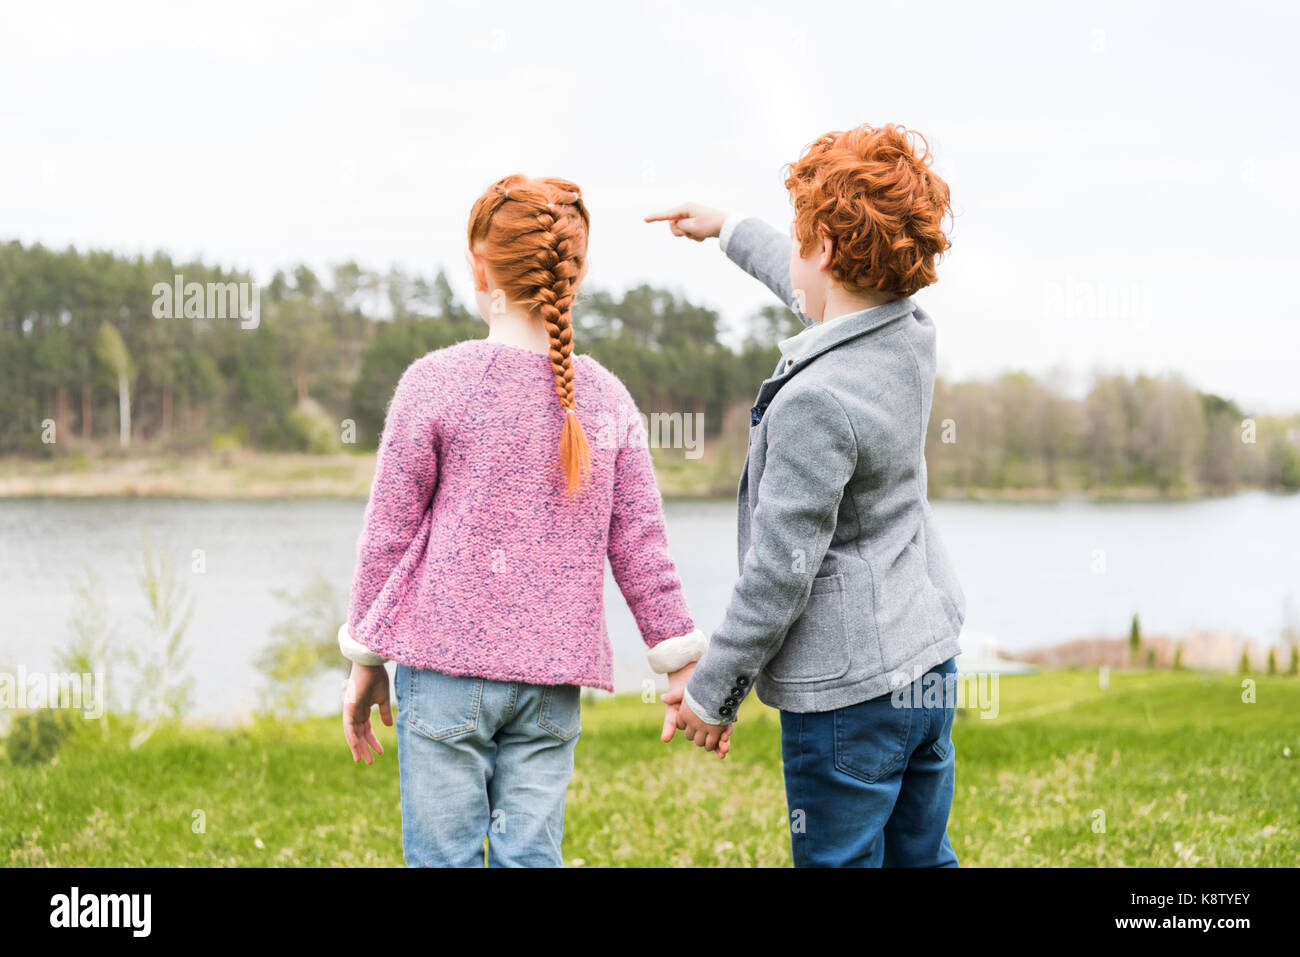 siblings holding hands - Stock Image